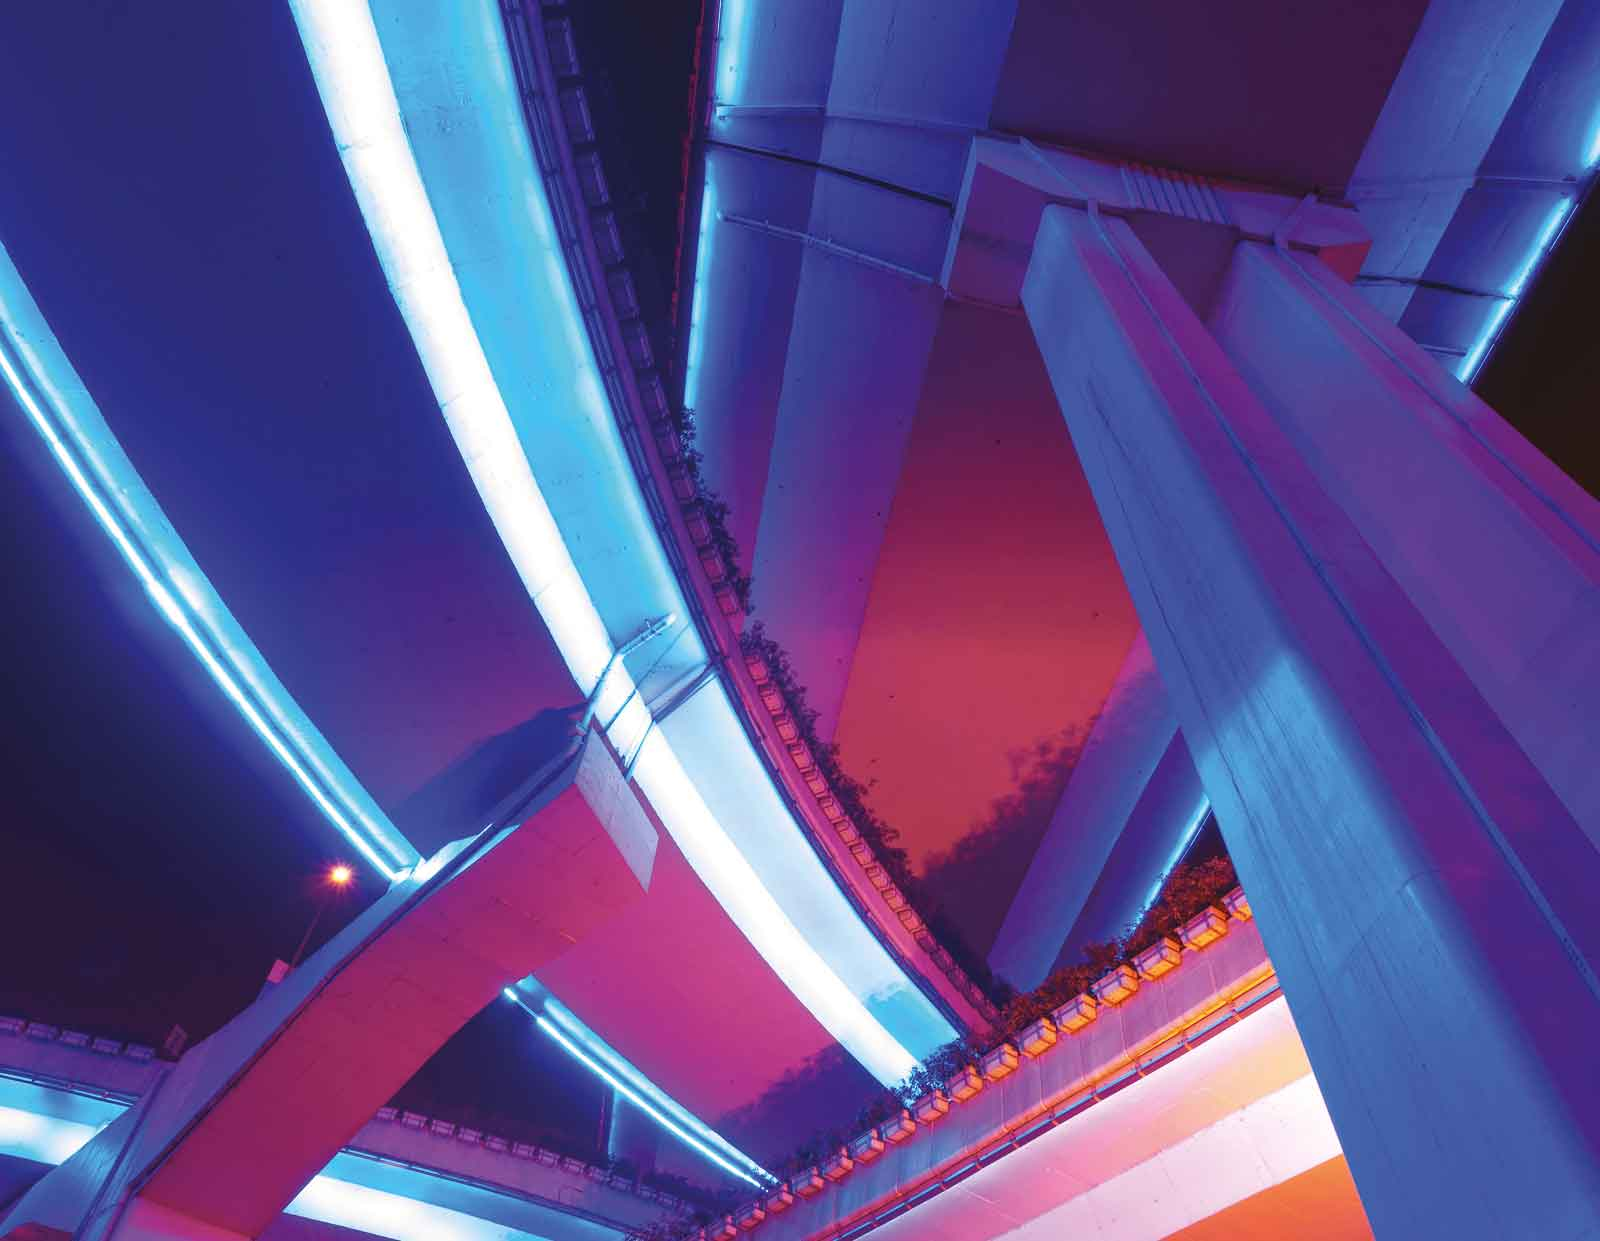 bright blue and pink highway image shot from underneath